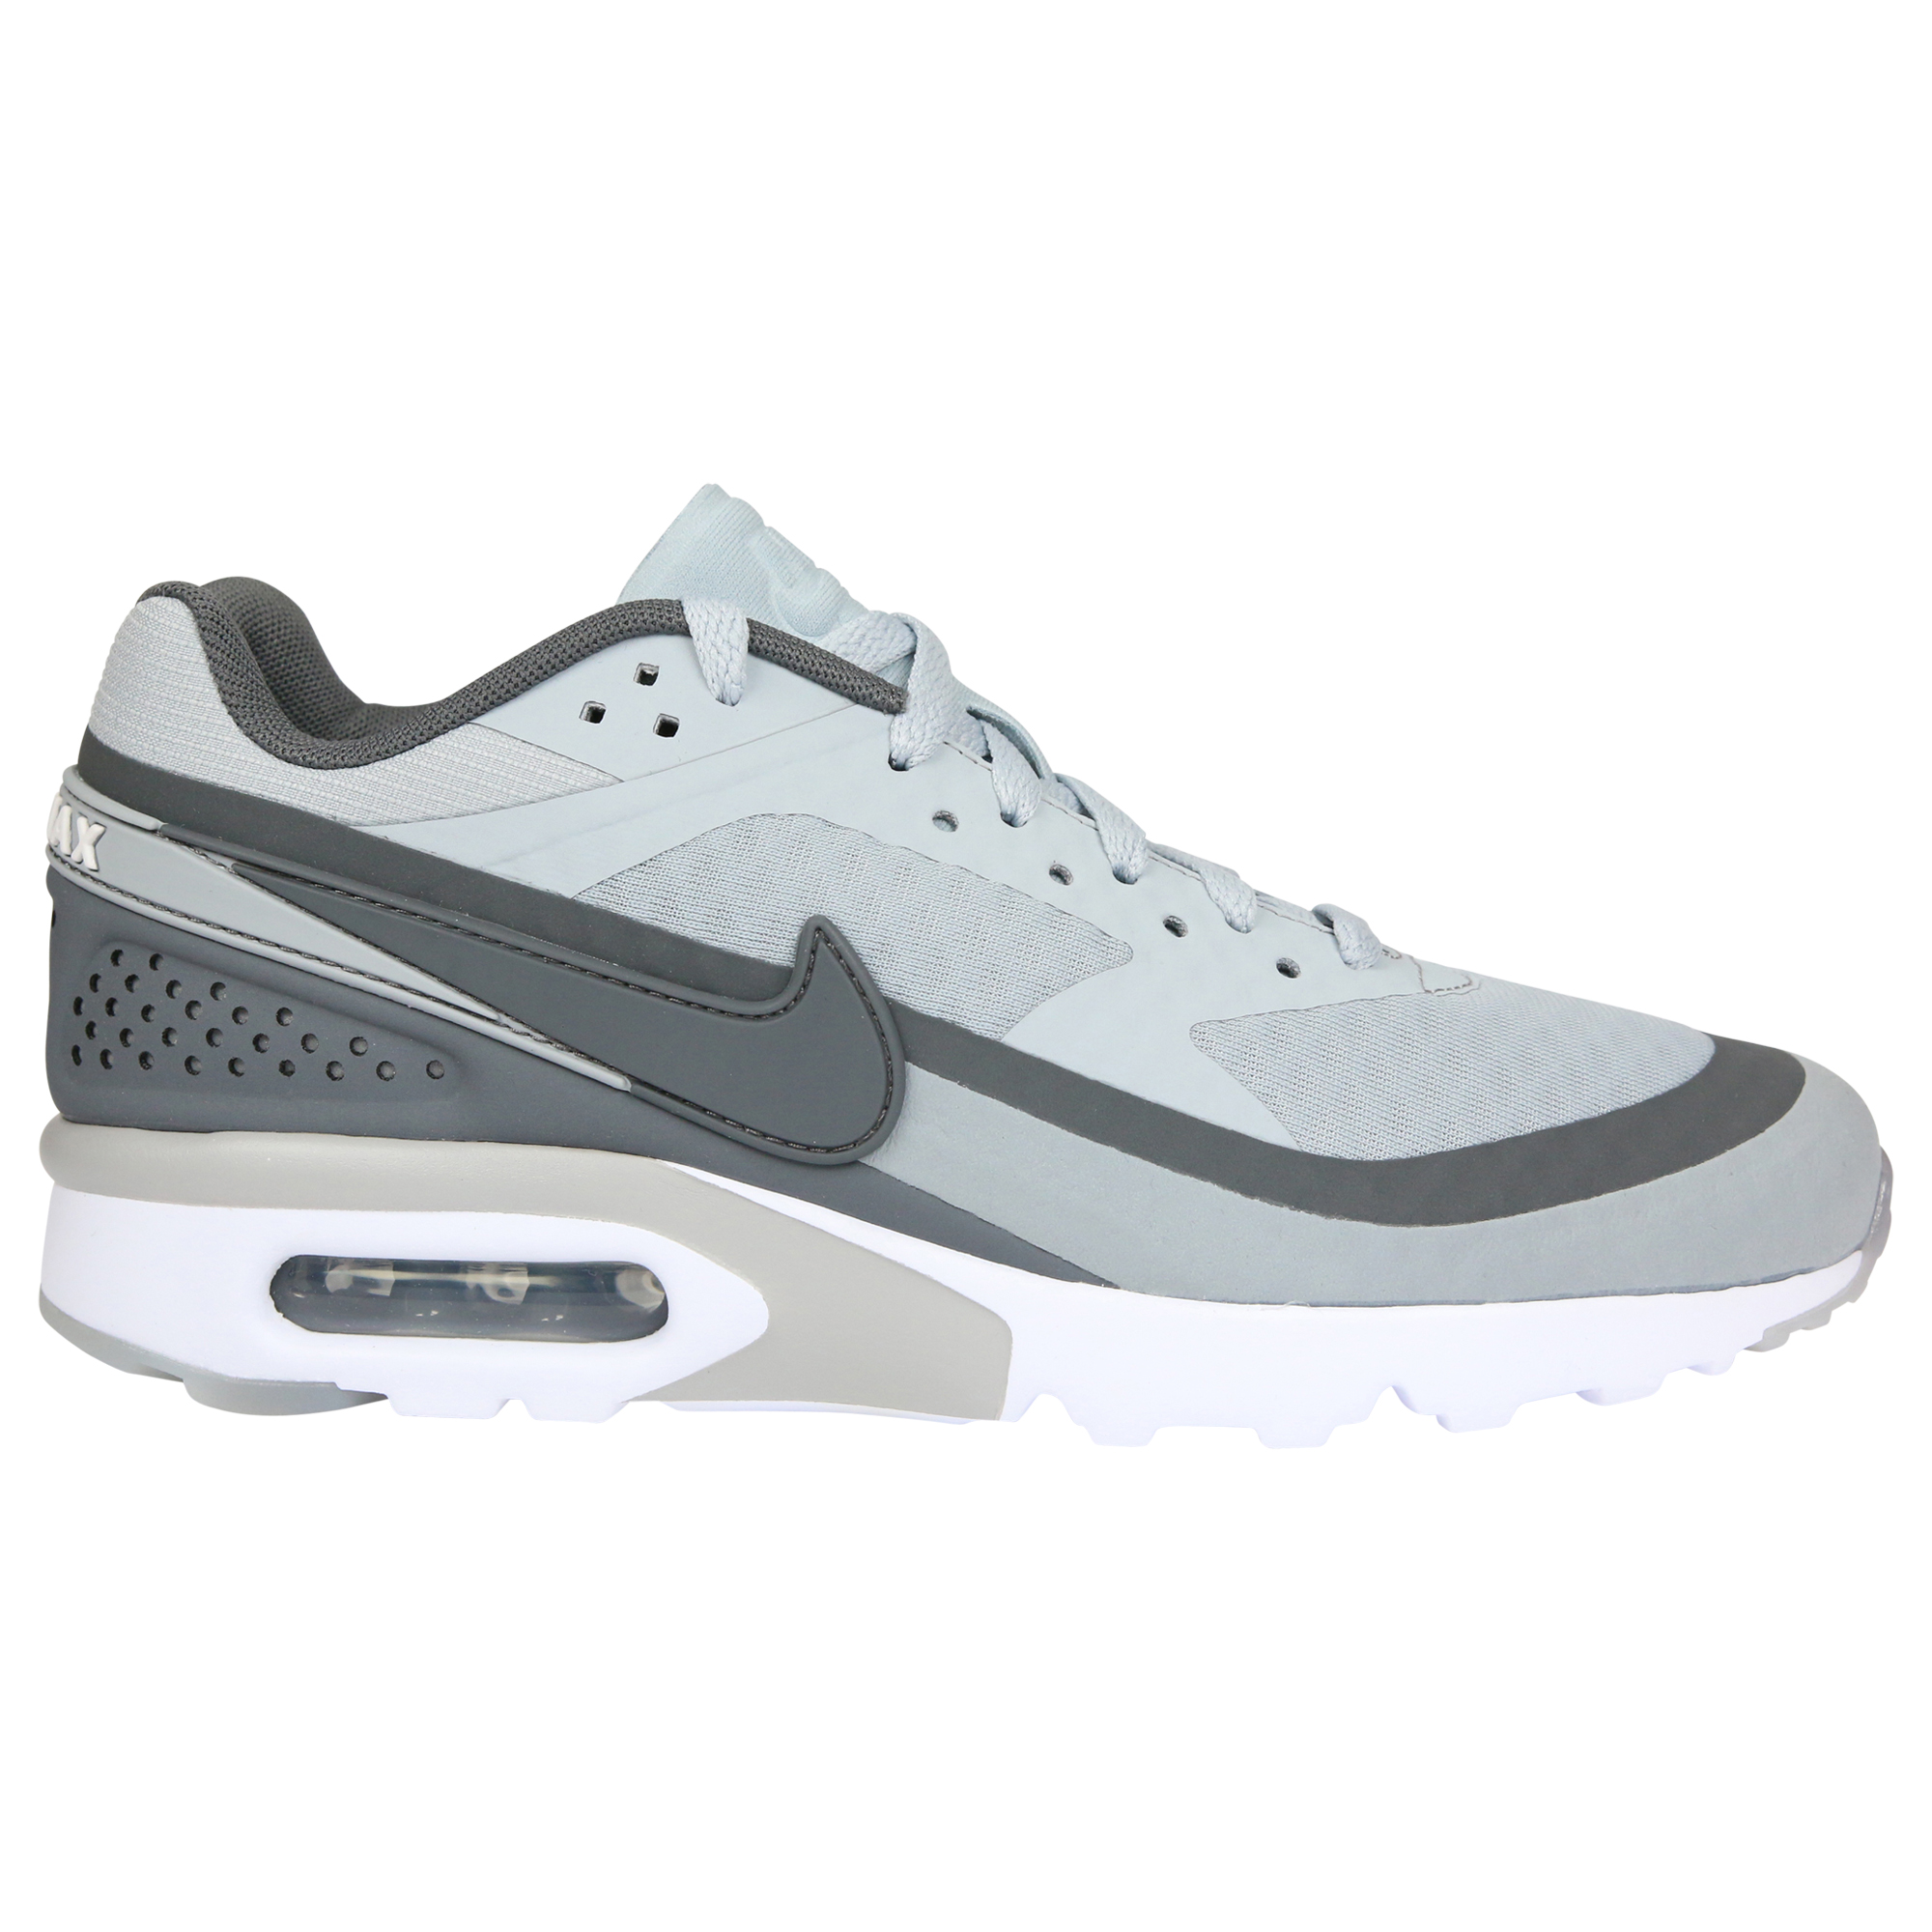 nike air max bw ultra premium og schuhe turnschuhe sneaker herren classic ebay. Black Bedroom Furniture Sets. Home Design Ideas